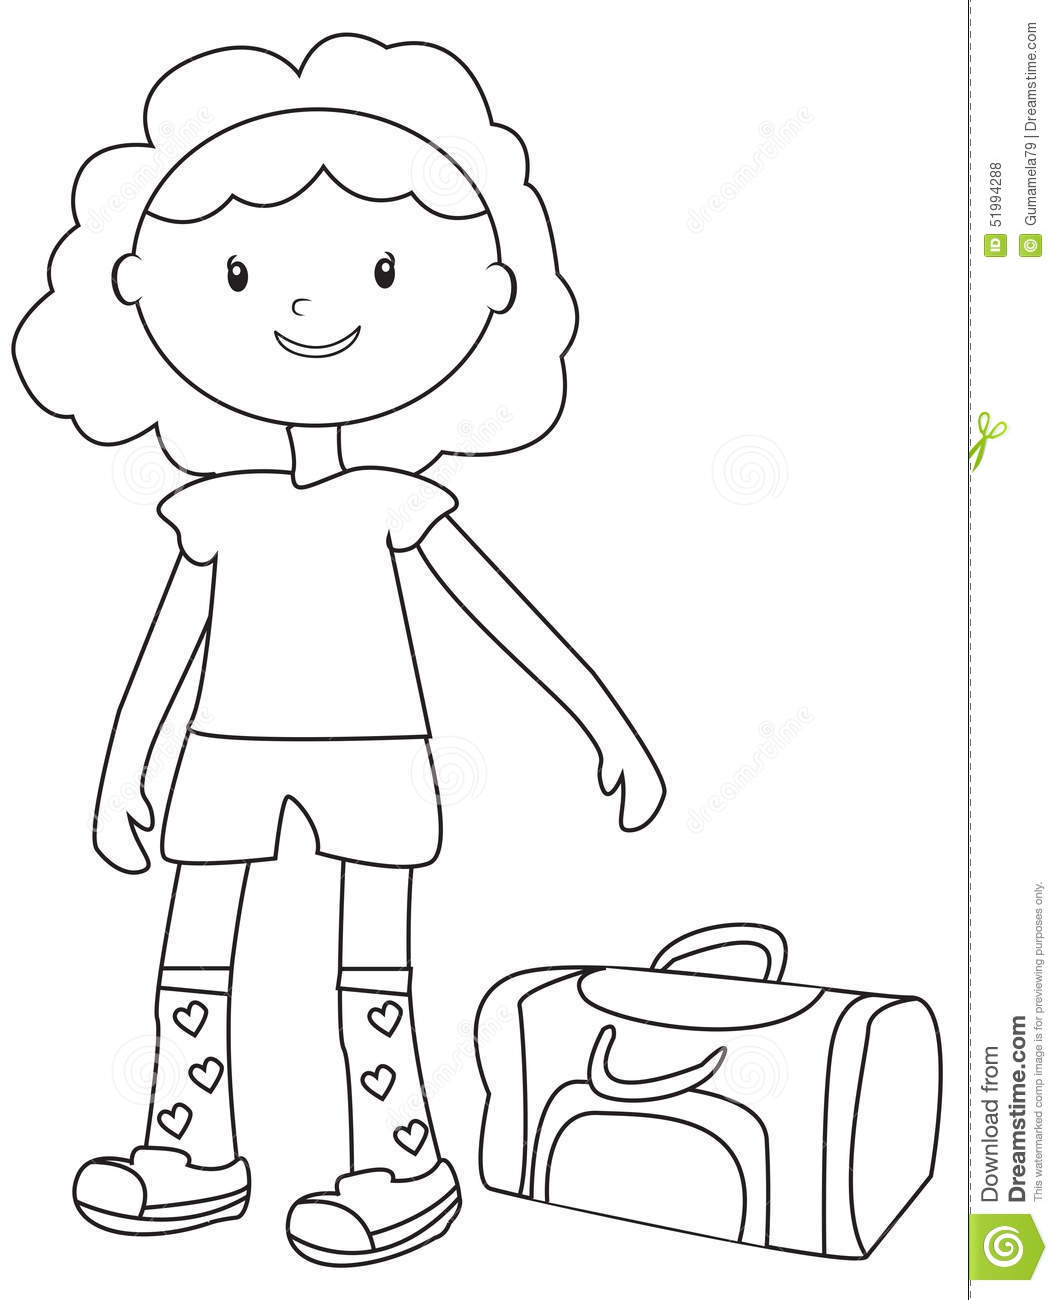 girl with a duffel bag coloring page stock illustration